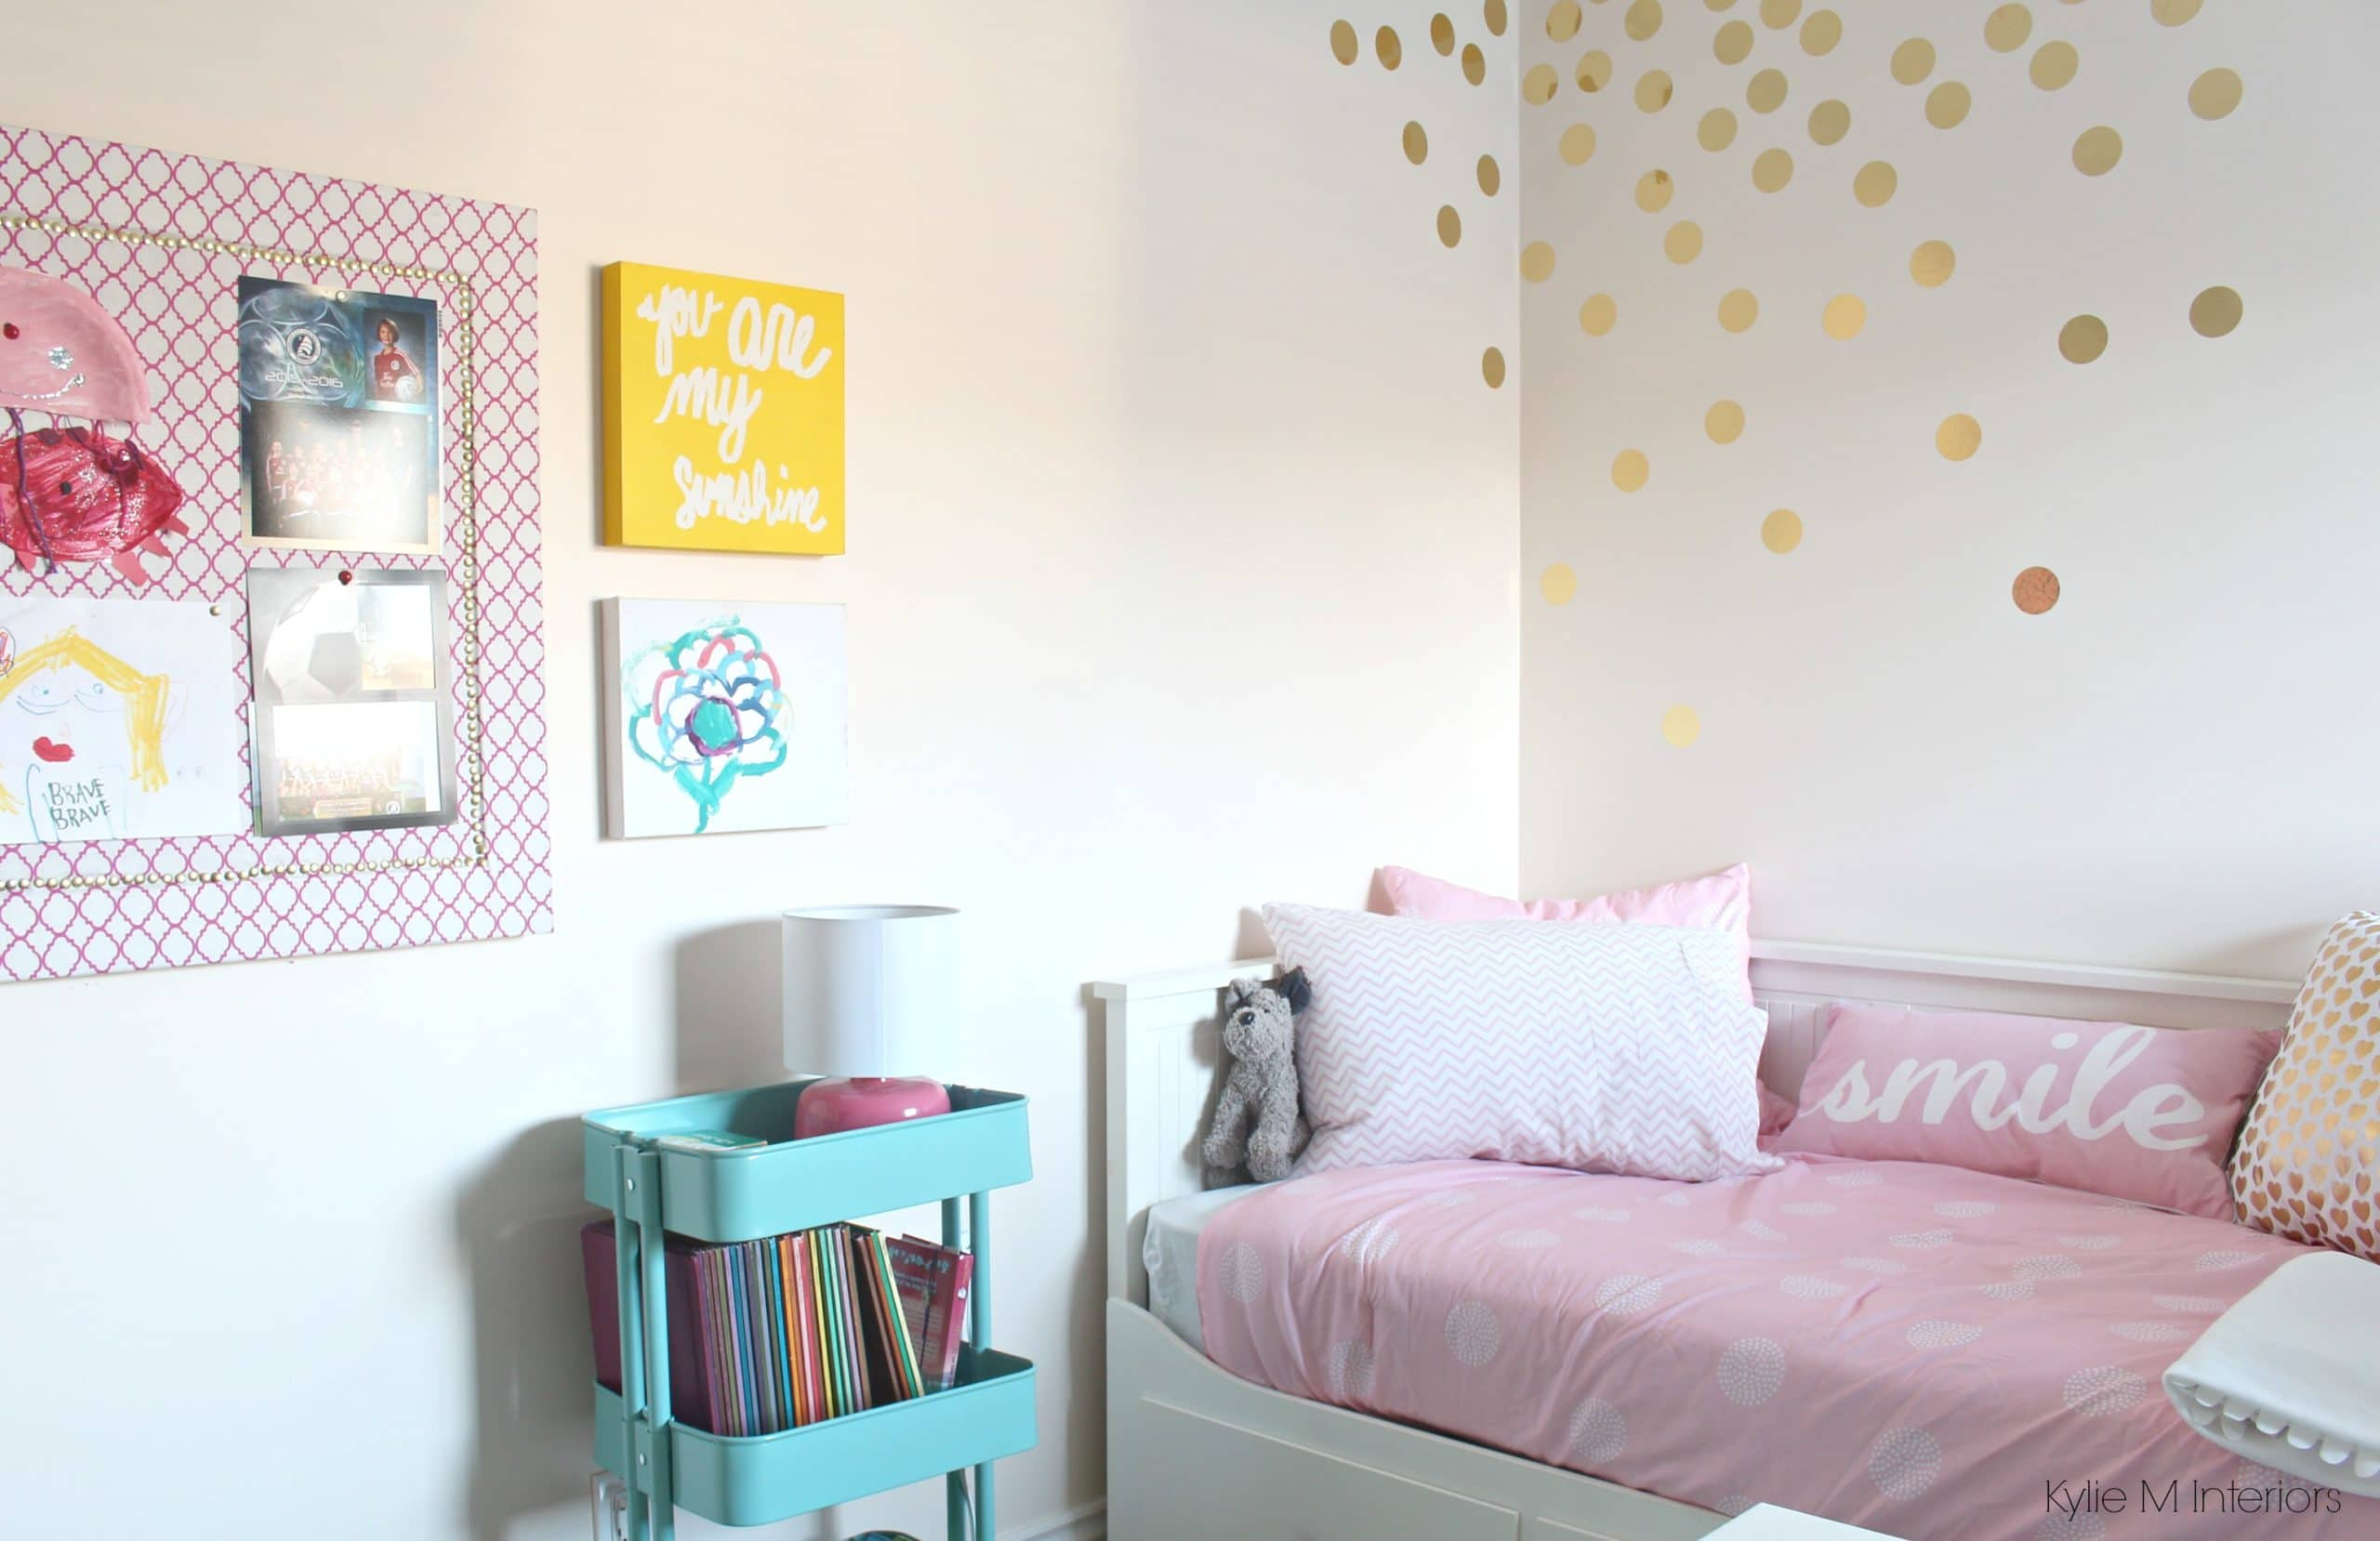 ikea raskog cart in a girls bedroom with pink walls and homemade